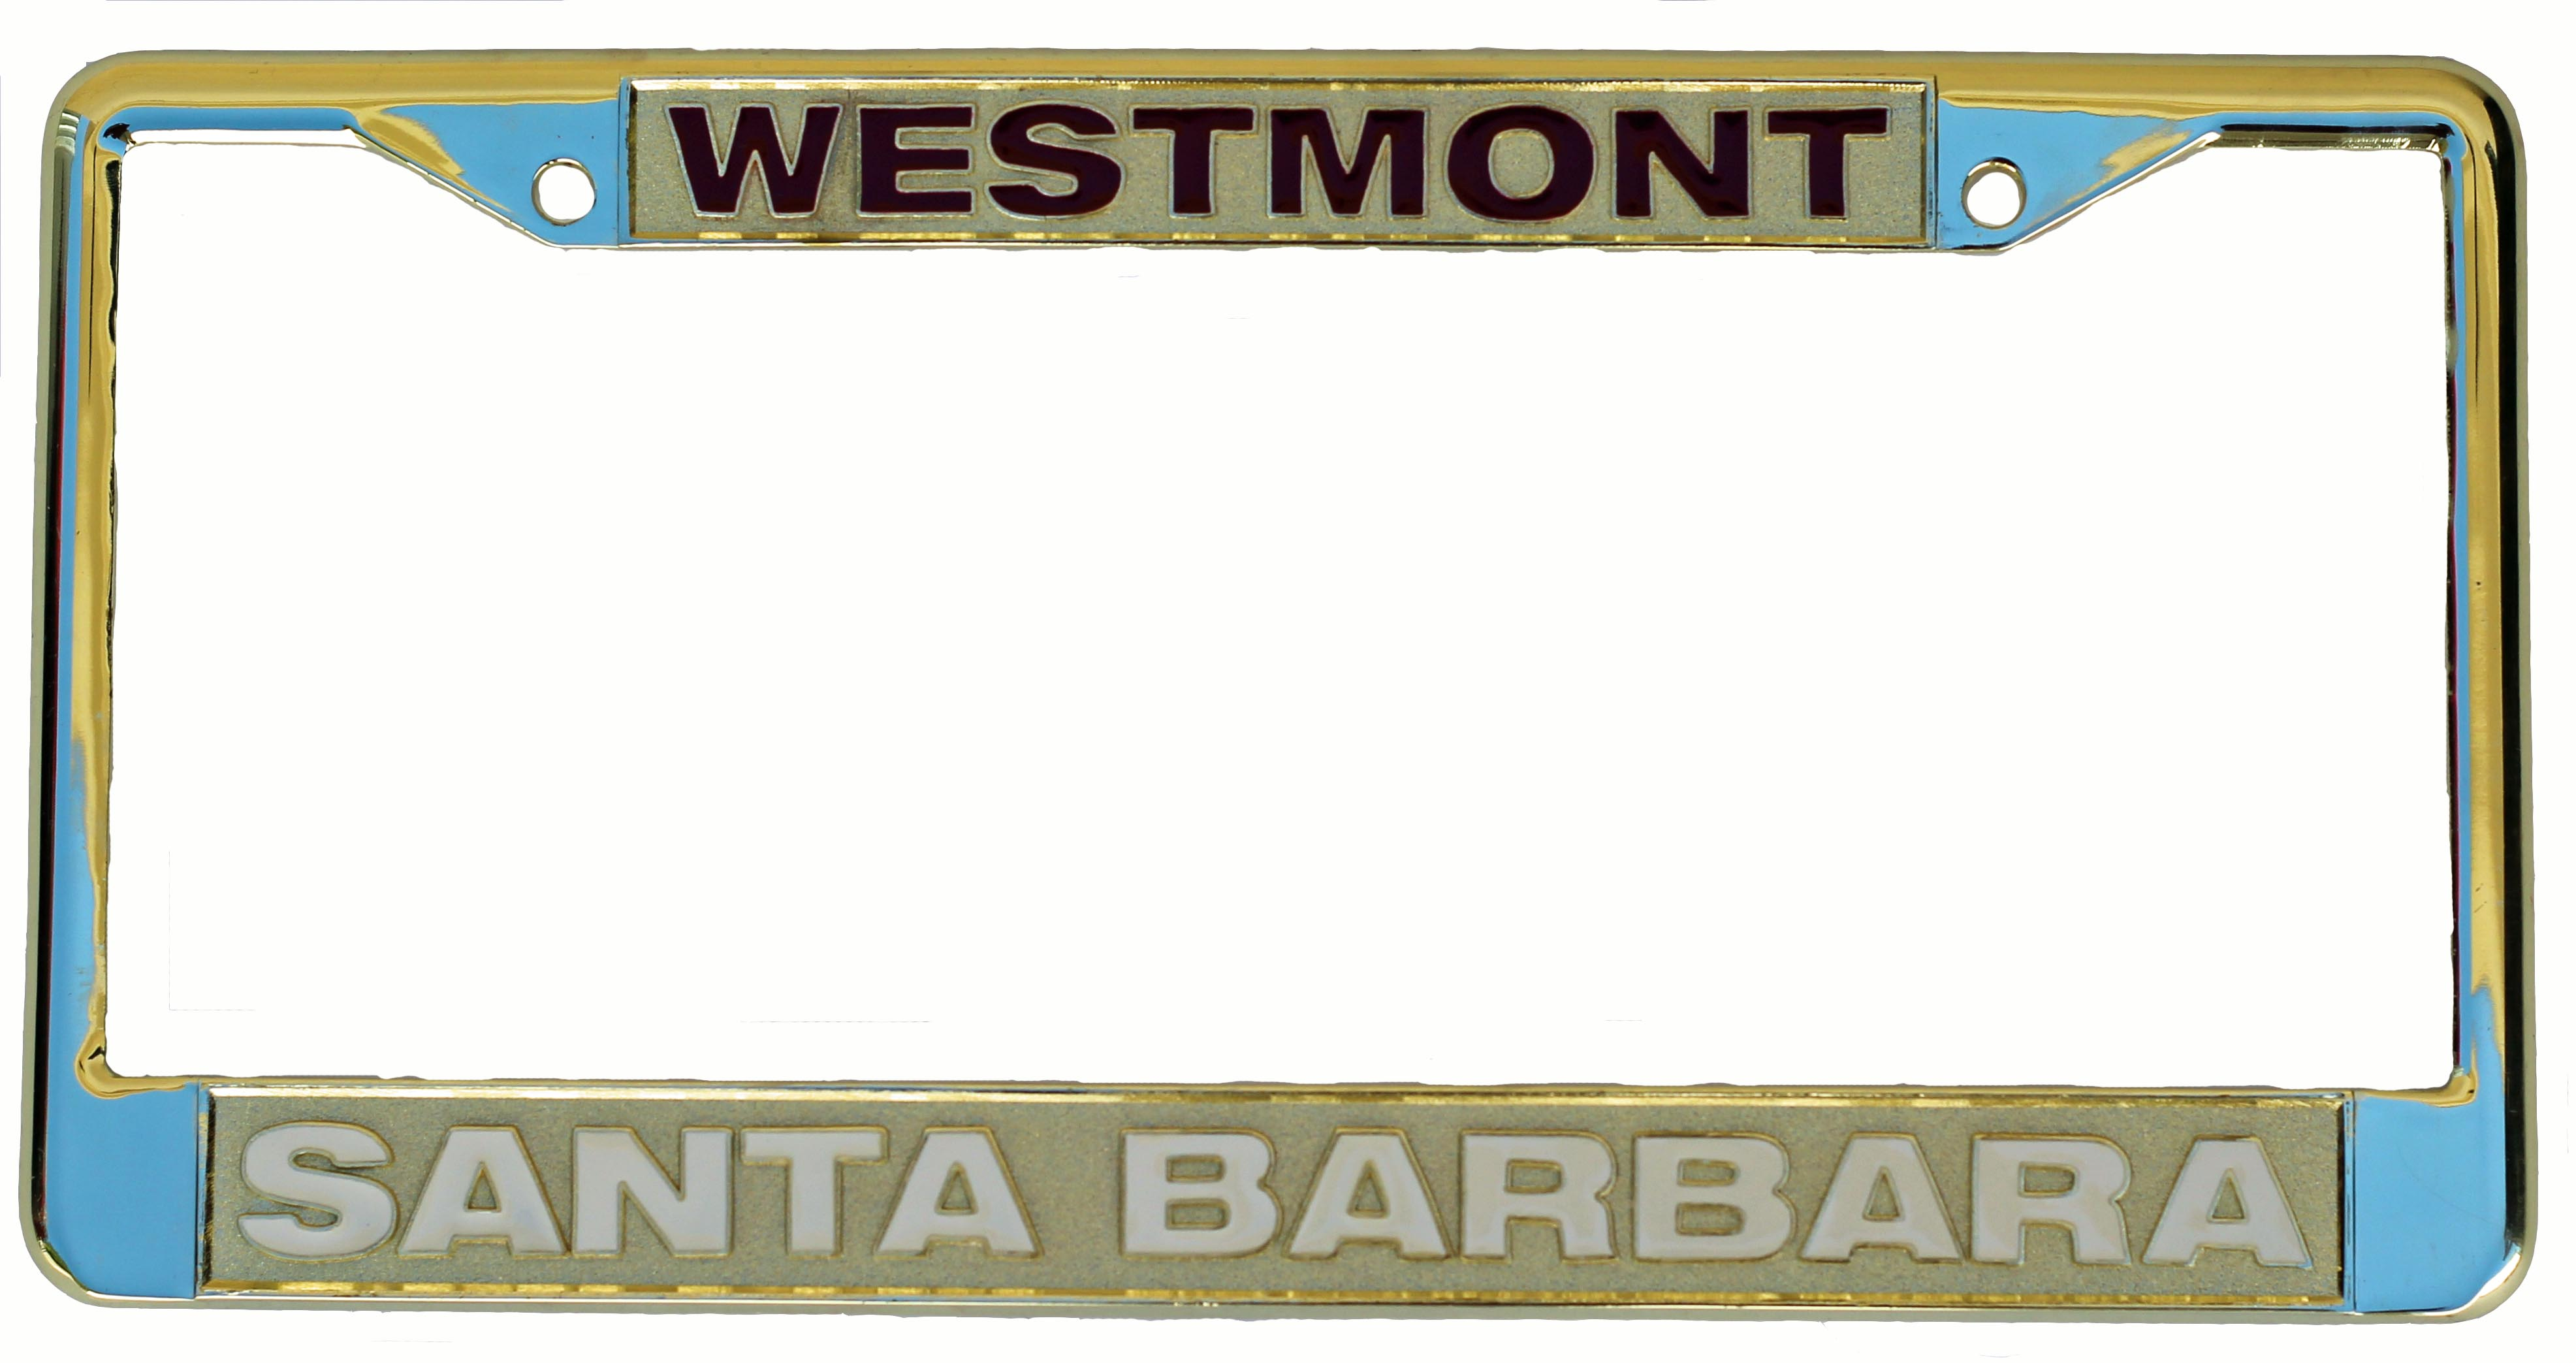 Image for the Gold Westmont Santa Barbara License Plate Frame product